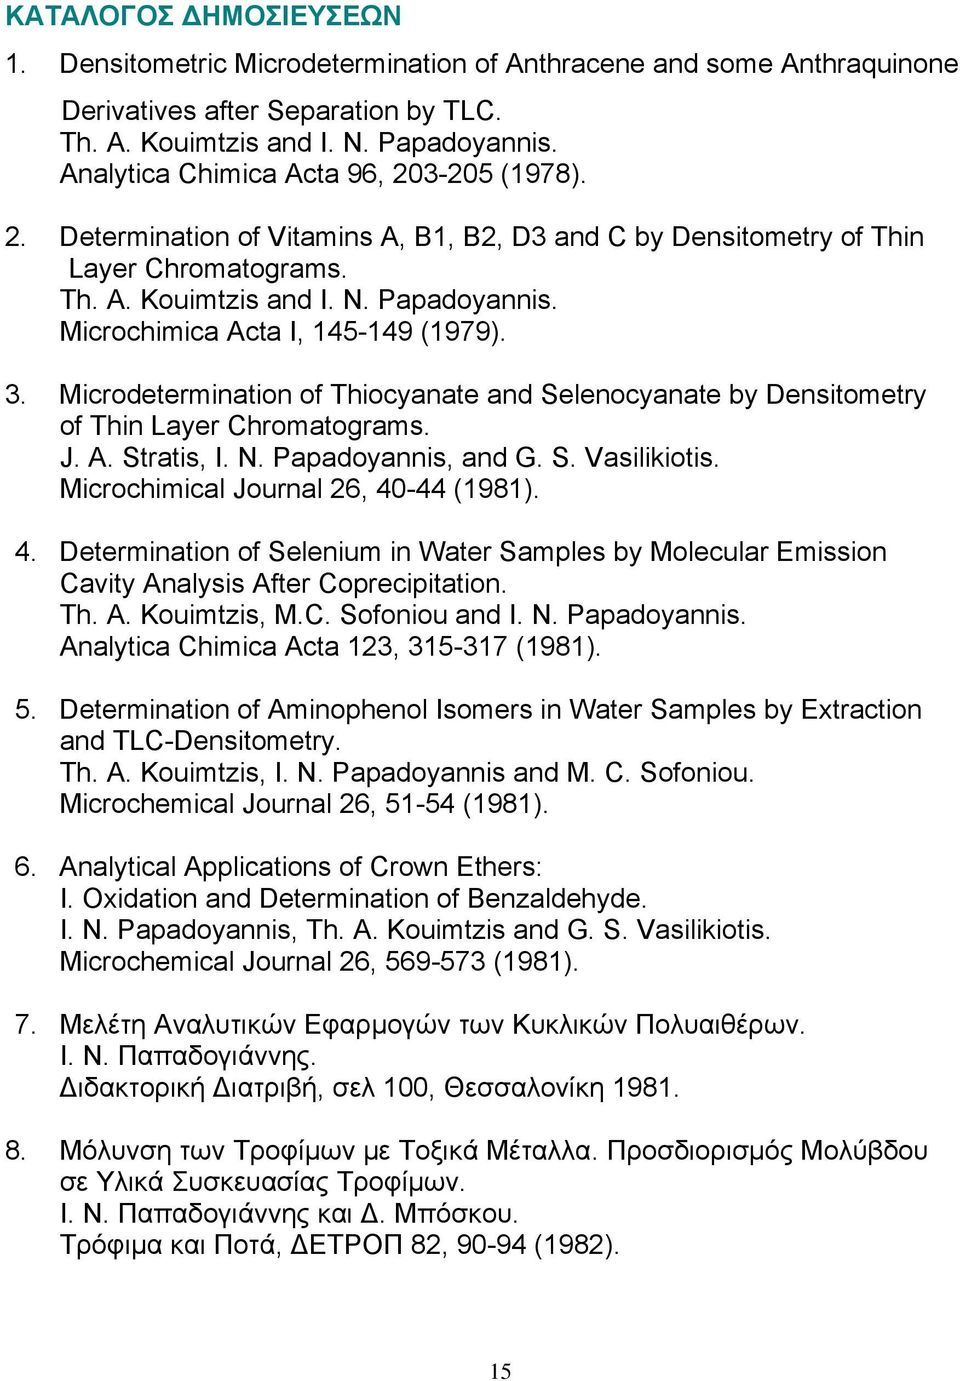 Microchimica Acta I, 145-149 (1979). 3. Microdetermination of Thiocyanate and Selenocyanate by Densitometry of Thin Layer Chromatograms. J. A. Stratis, I. N. Papadoyannis, and G. S. Vasilikiotis.